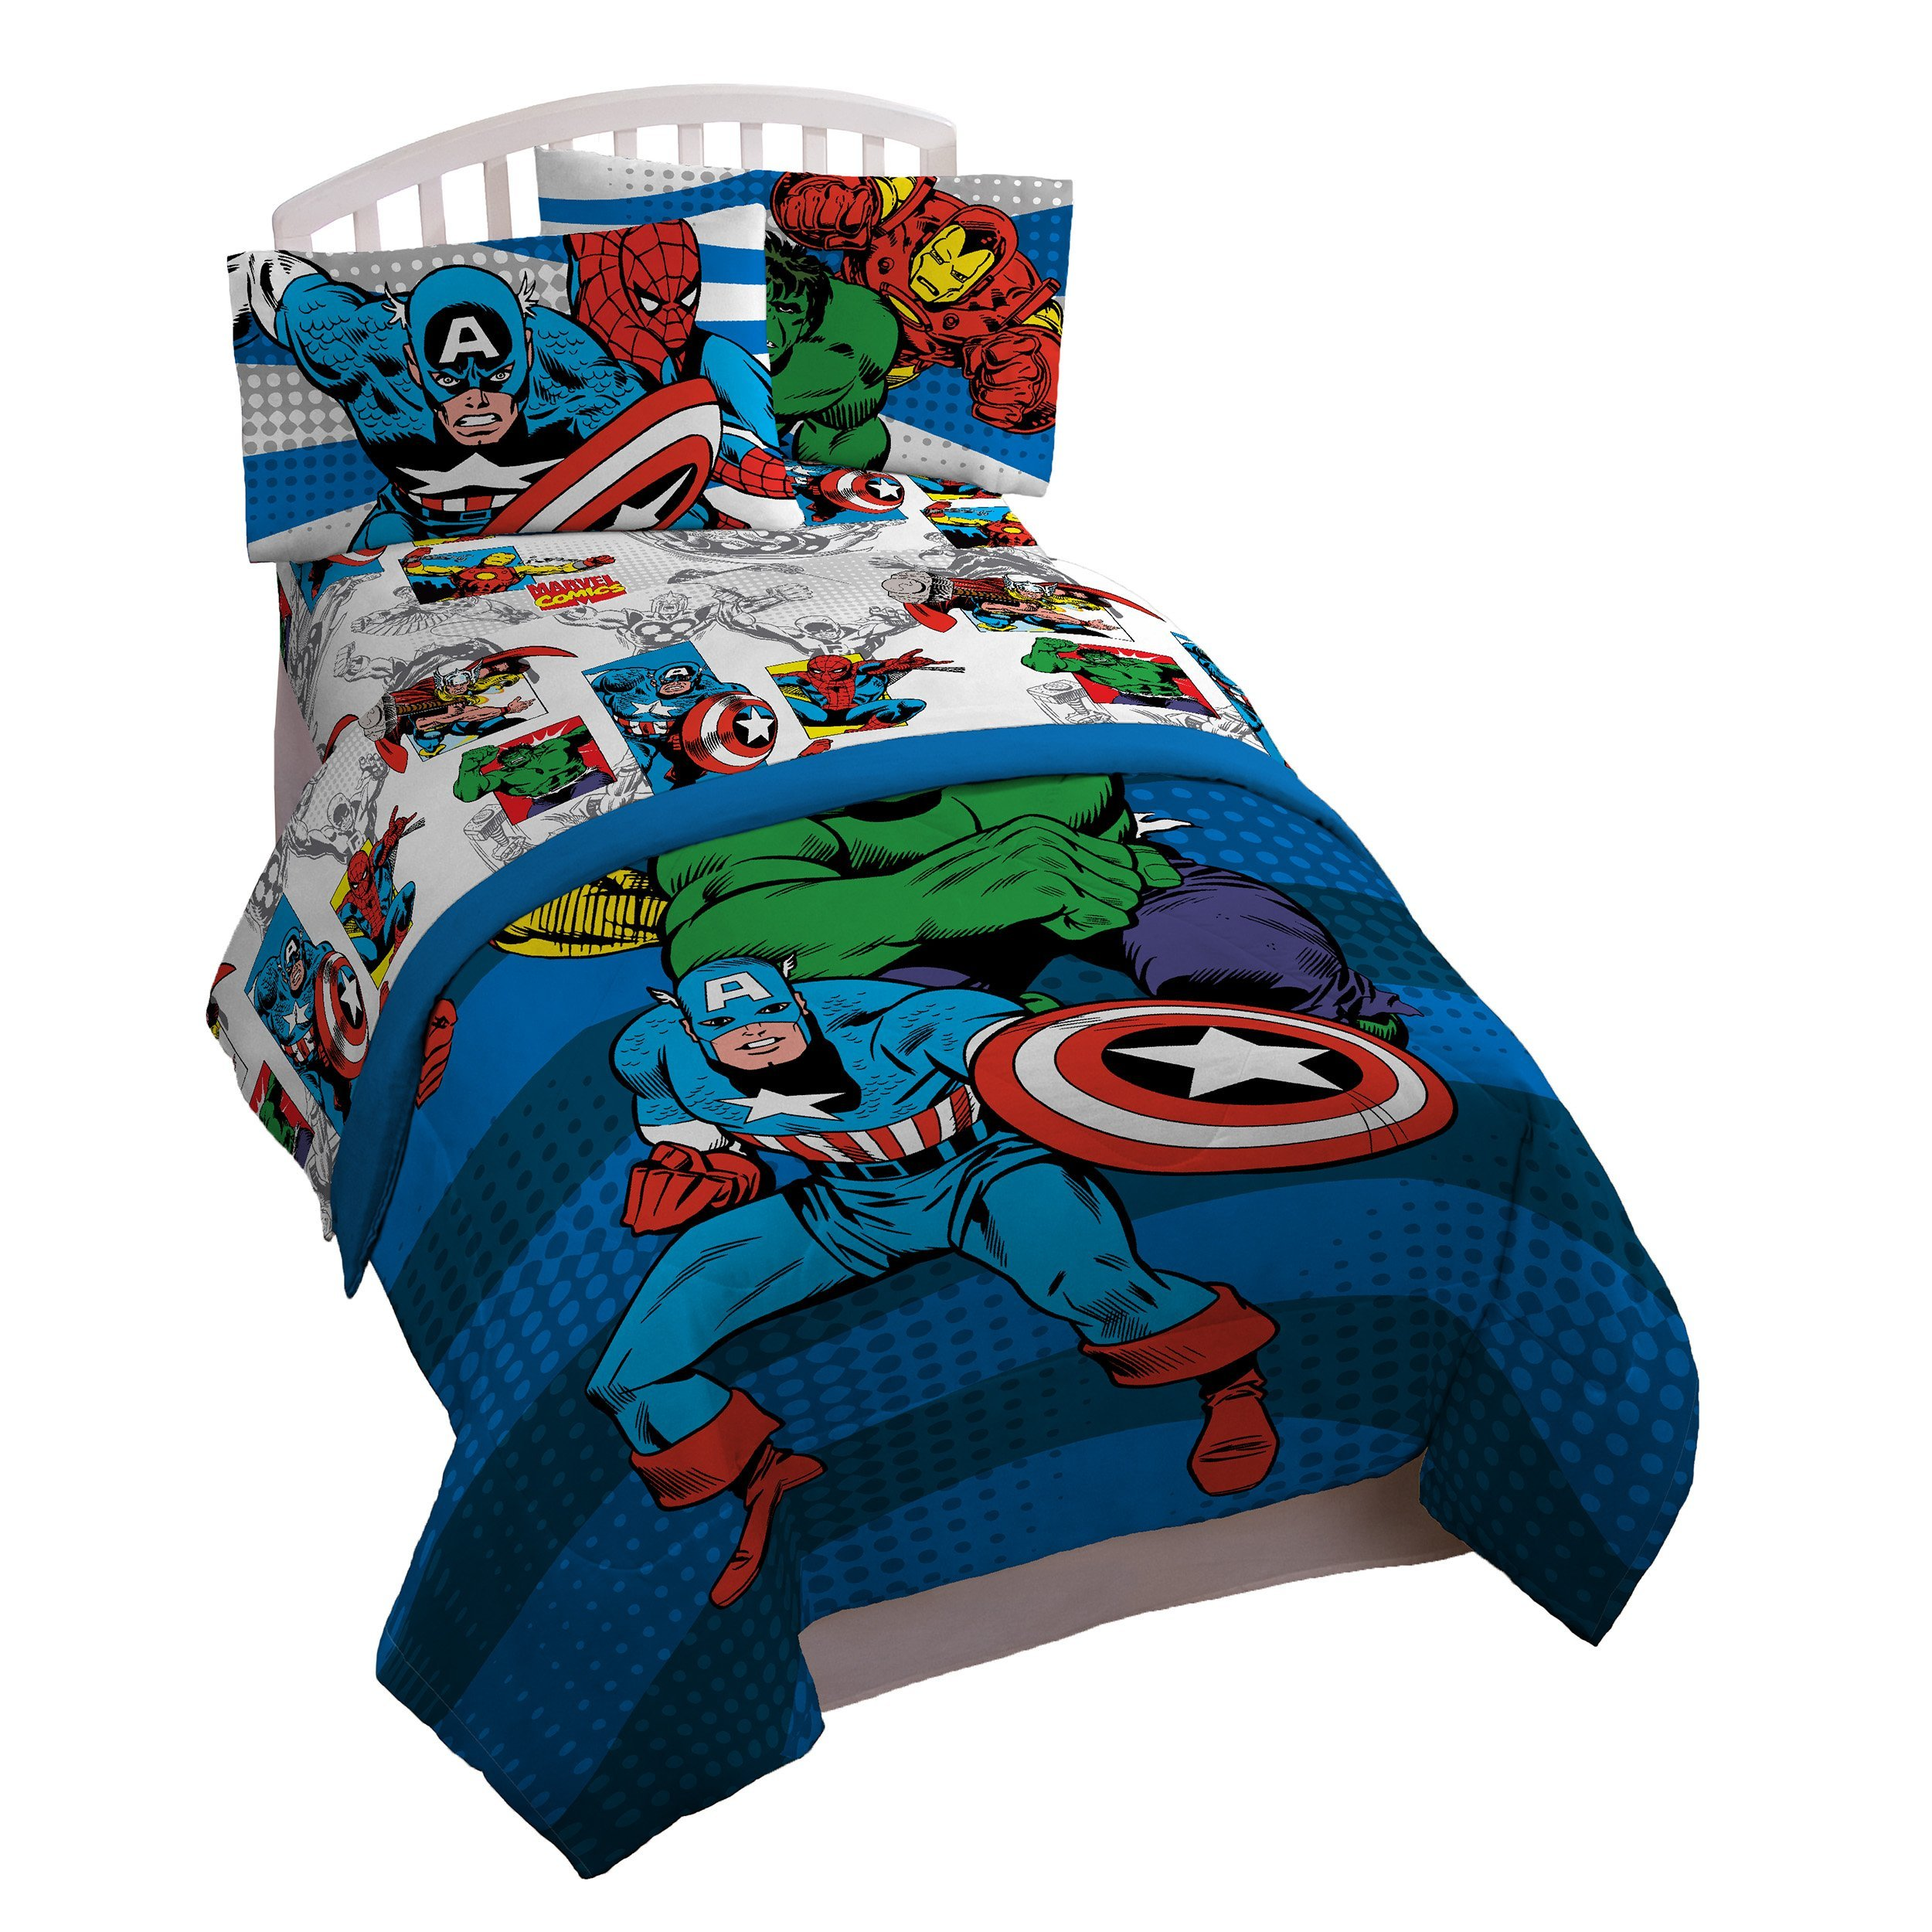 Marvel Comics 'Good Guys' Microfiber Sheet Set, Full